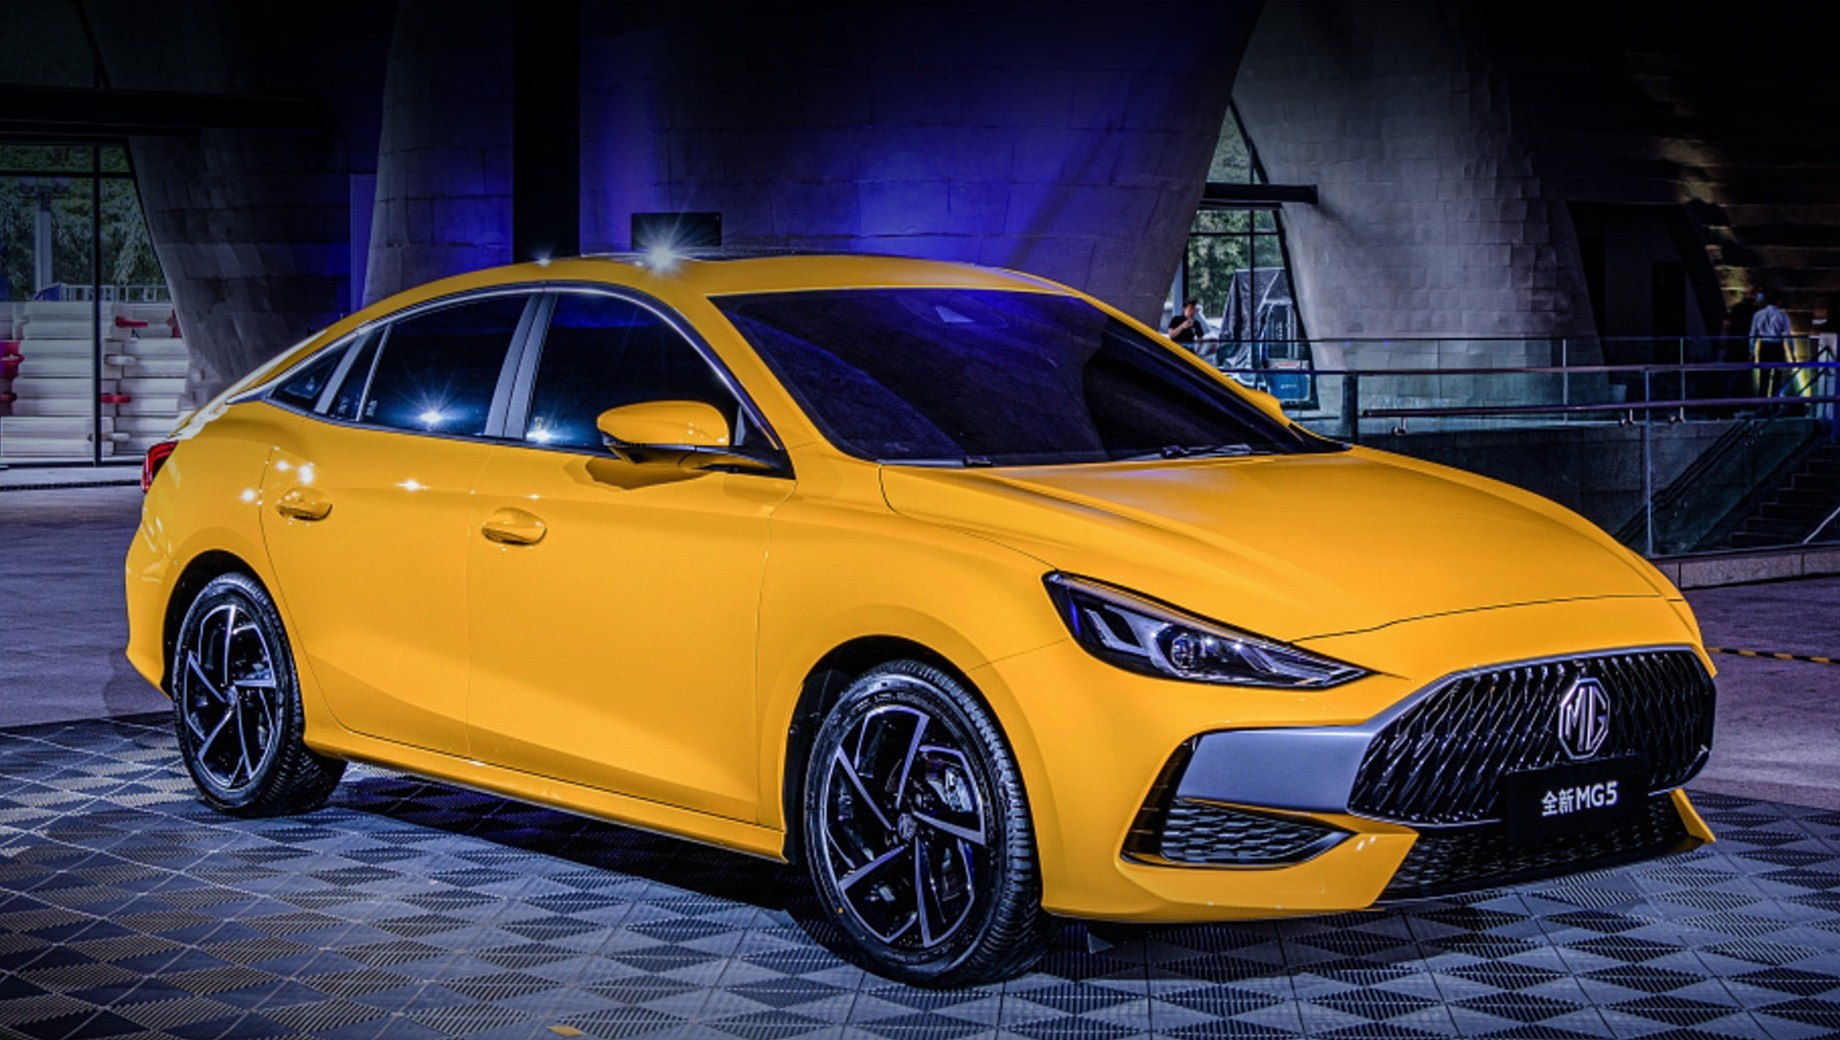 Customers in England can already purchase the China-made compact sedan named MG 5, which is essentially a rebadged Roewe Ei5. Today, however, a model by the same name has been announced for China – and it looks like a very different vehicle.